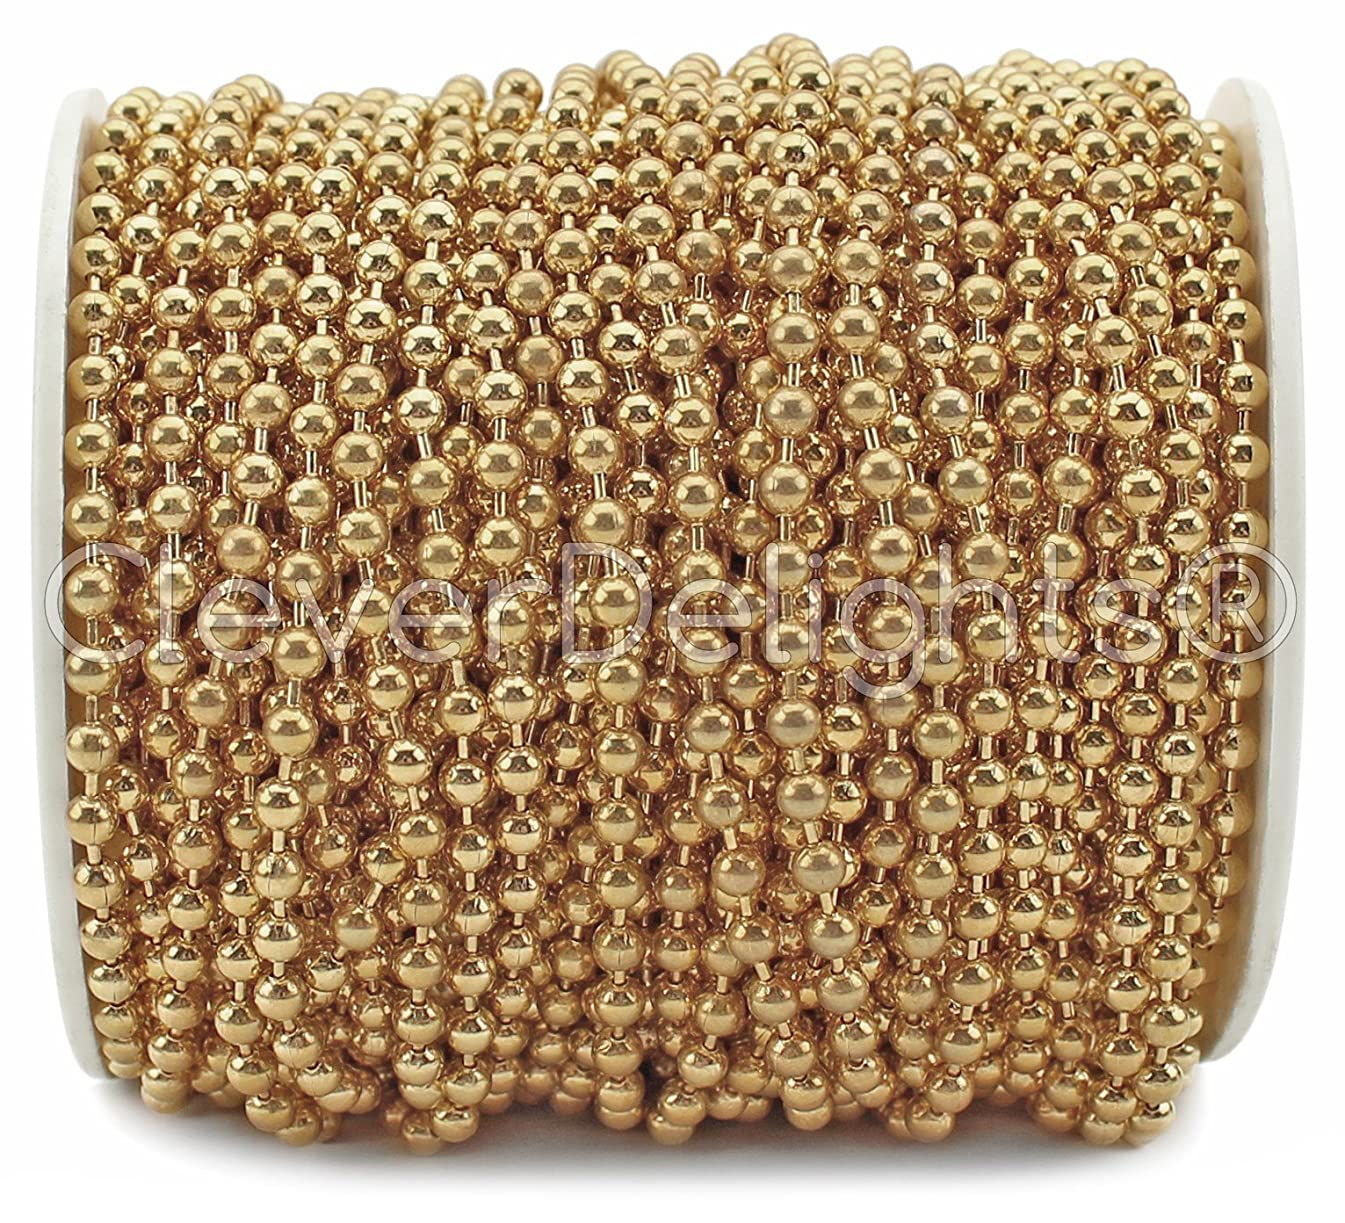 CleverDelights Ball Chain Spool - 30 Feet - 3.2mm Ball (#6 Size) - Champagne Gold Color - 10 Meters